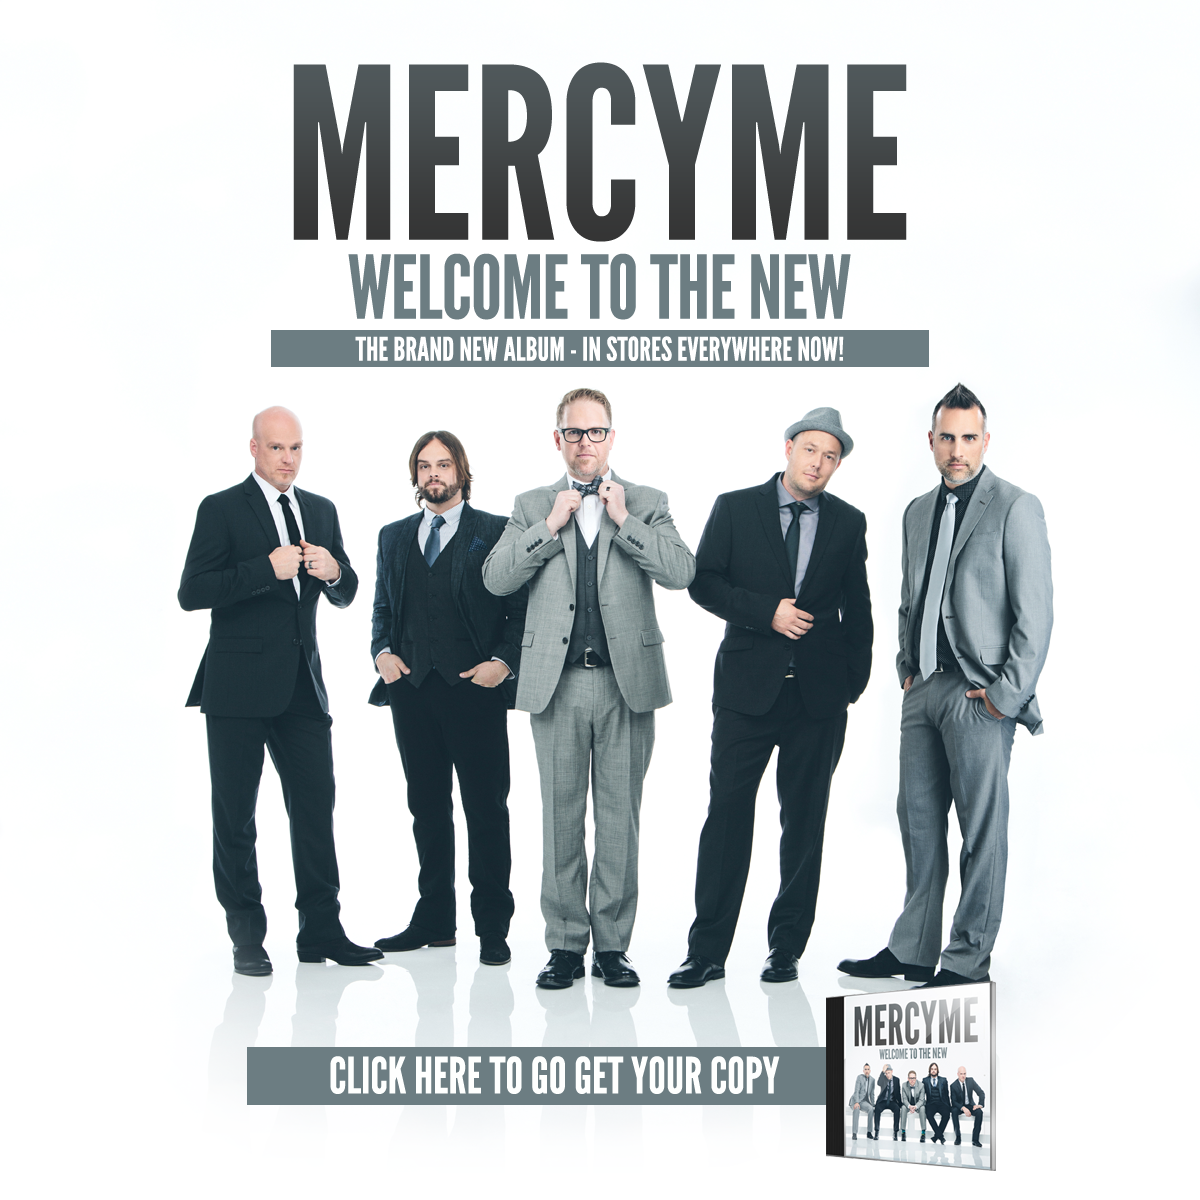 MercyMe Cover Photo